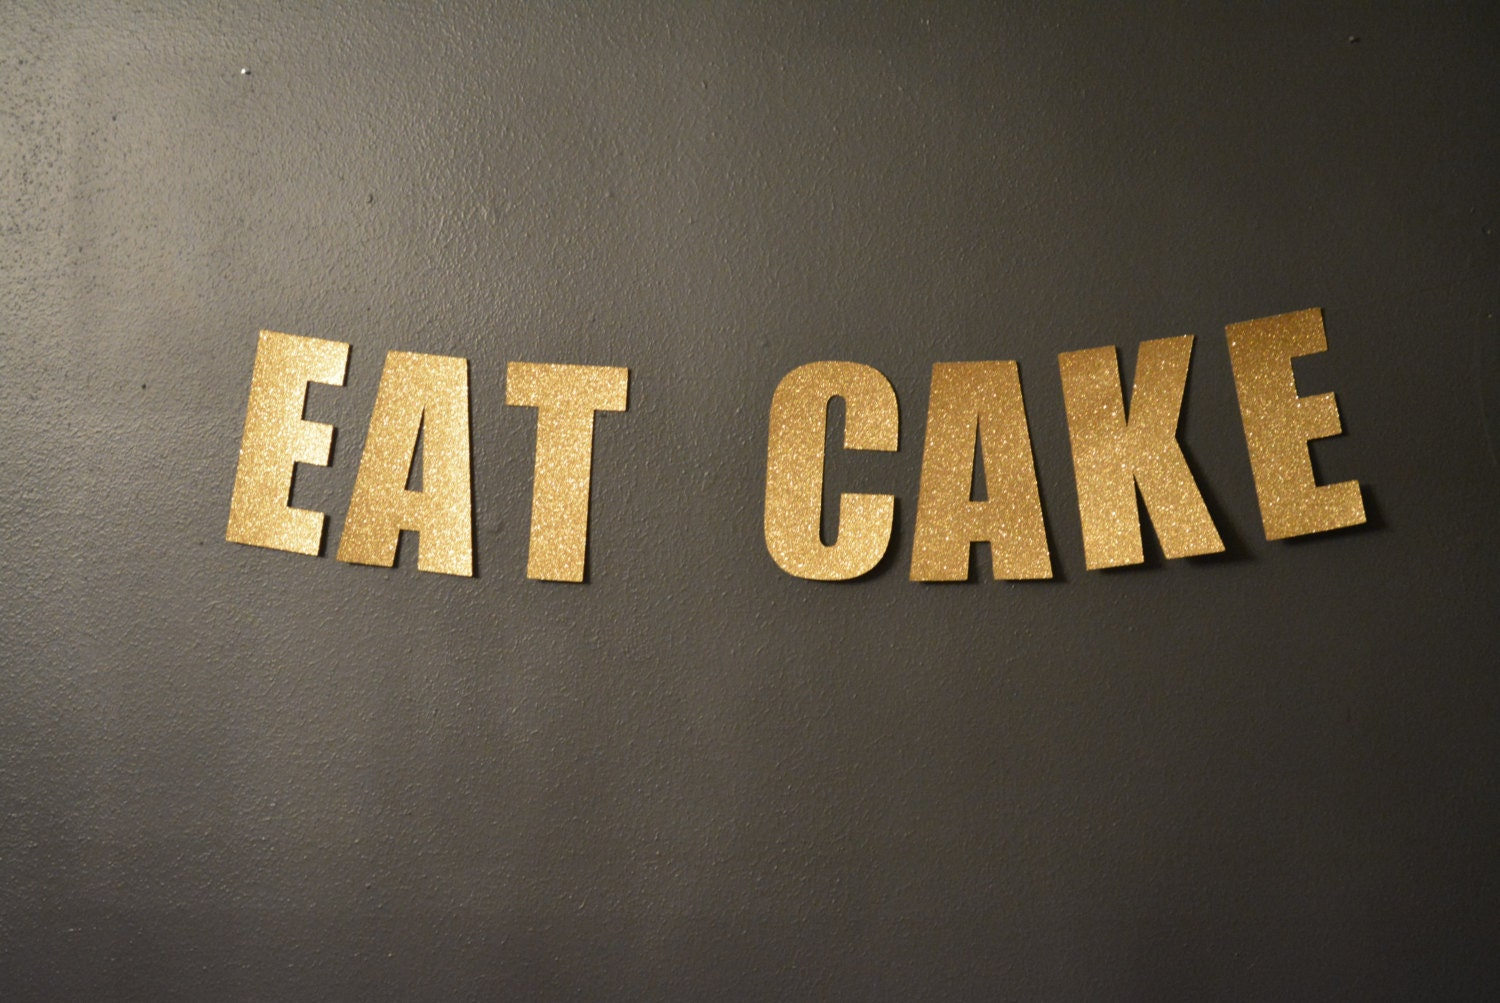 Diy Wedding Word Banners: EAT CAKE Glitter Gold Wedding Word Banner Perfect For Your